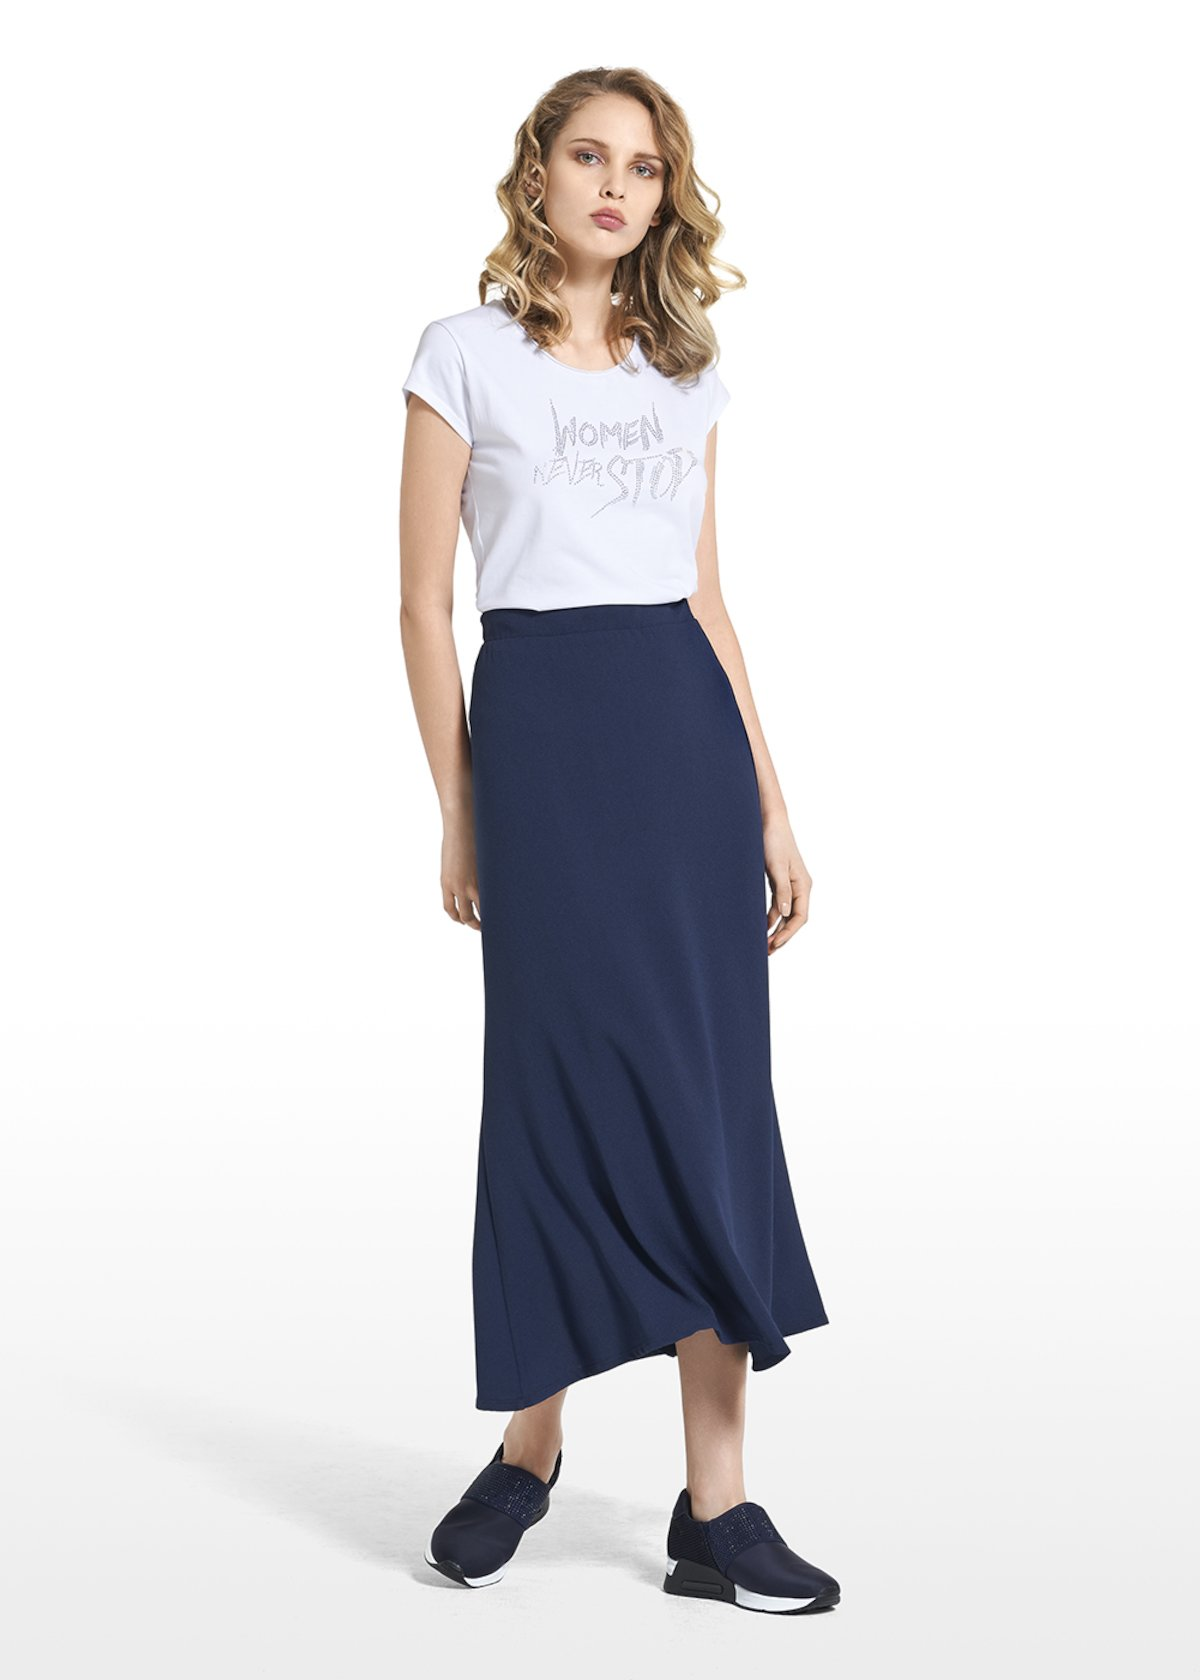 Gonna lunga Grazia in crêpe wave - Dark Blue - Donna - Immagine categoria